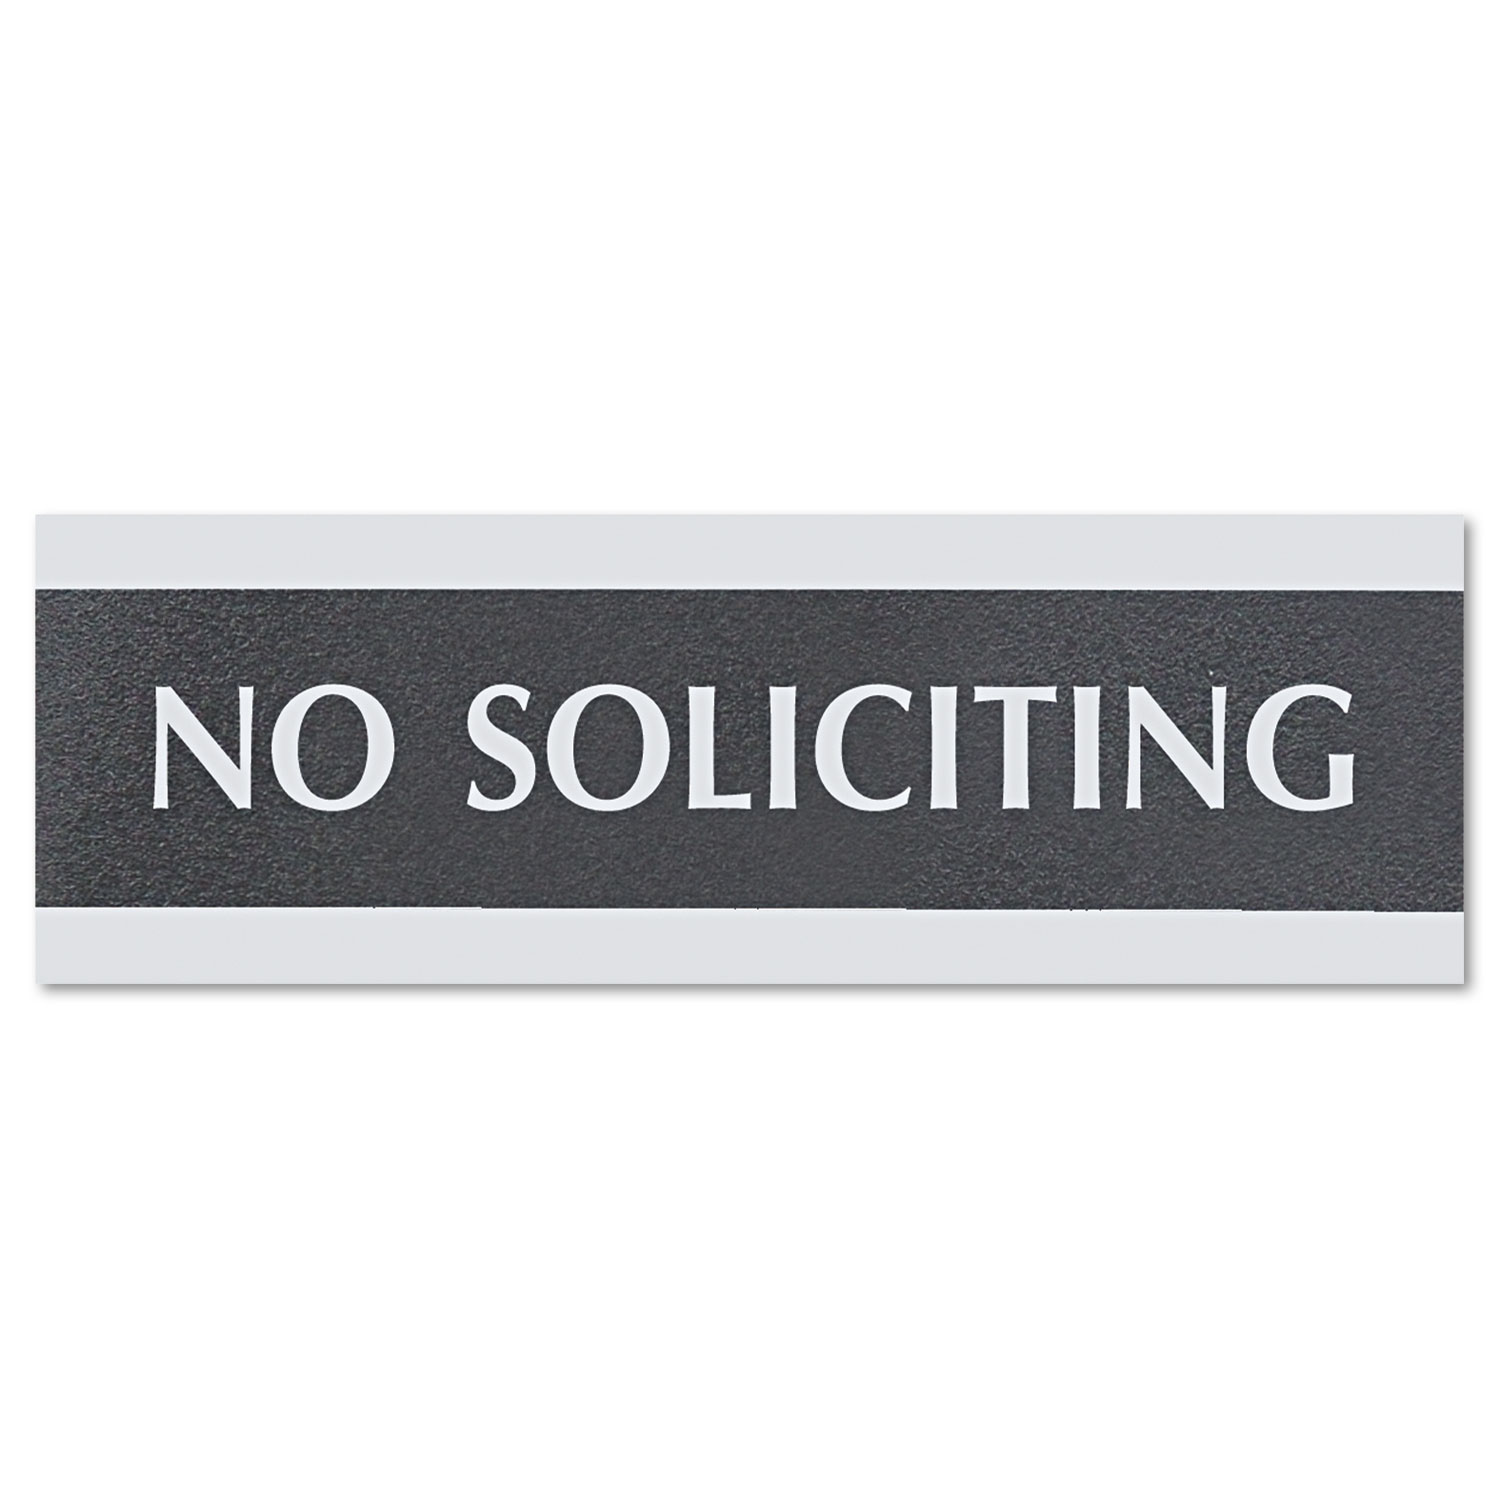 Century Series Office Sign, NO SOLICITING, 9 x 3, Black/Silver